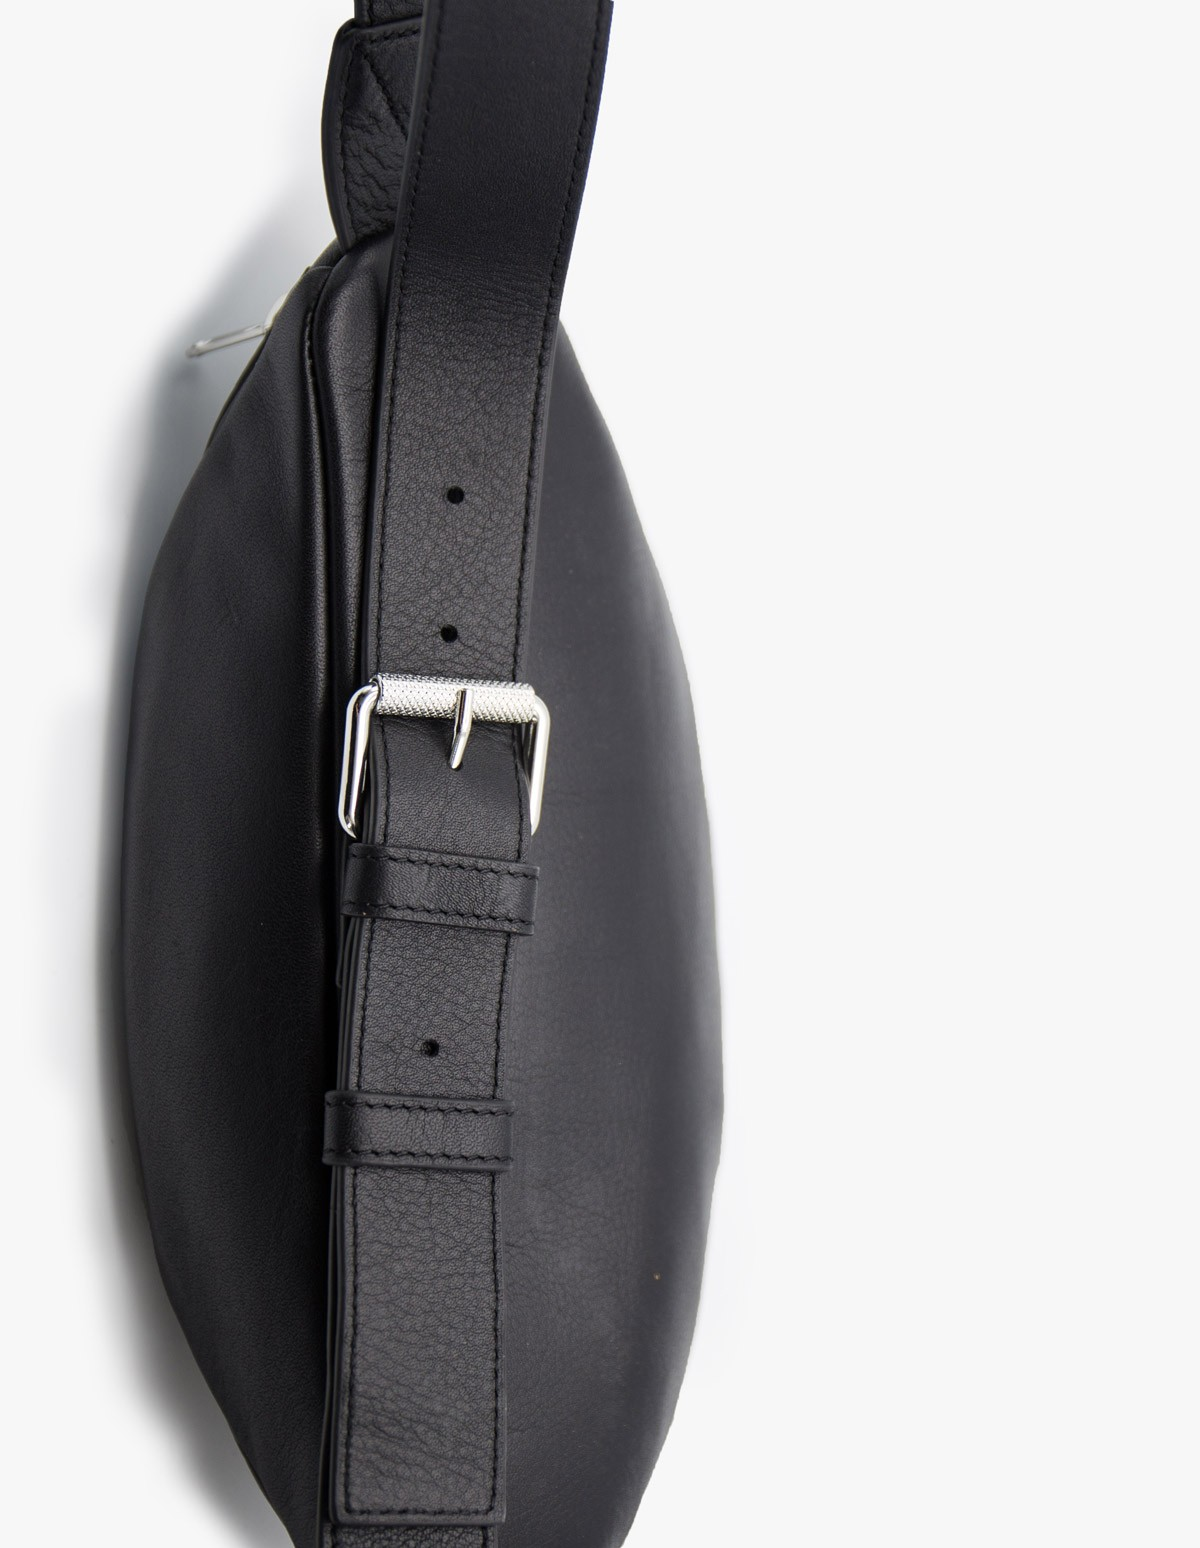 McQ Alexander McQueen Loveless Waist Bag  in Darkest Black